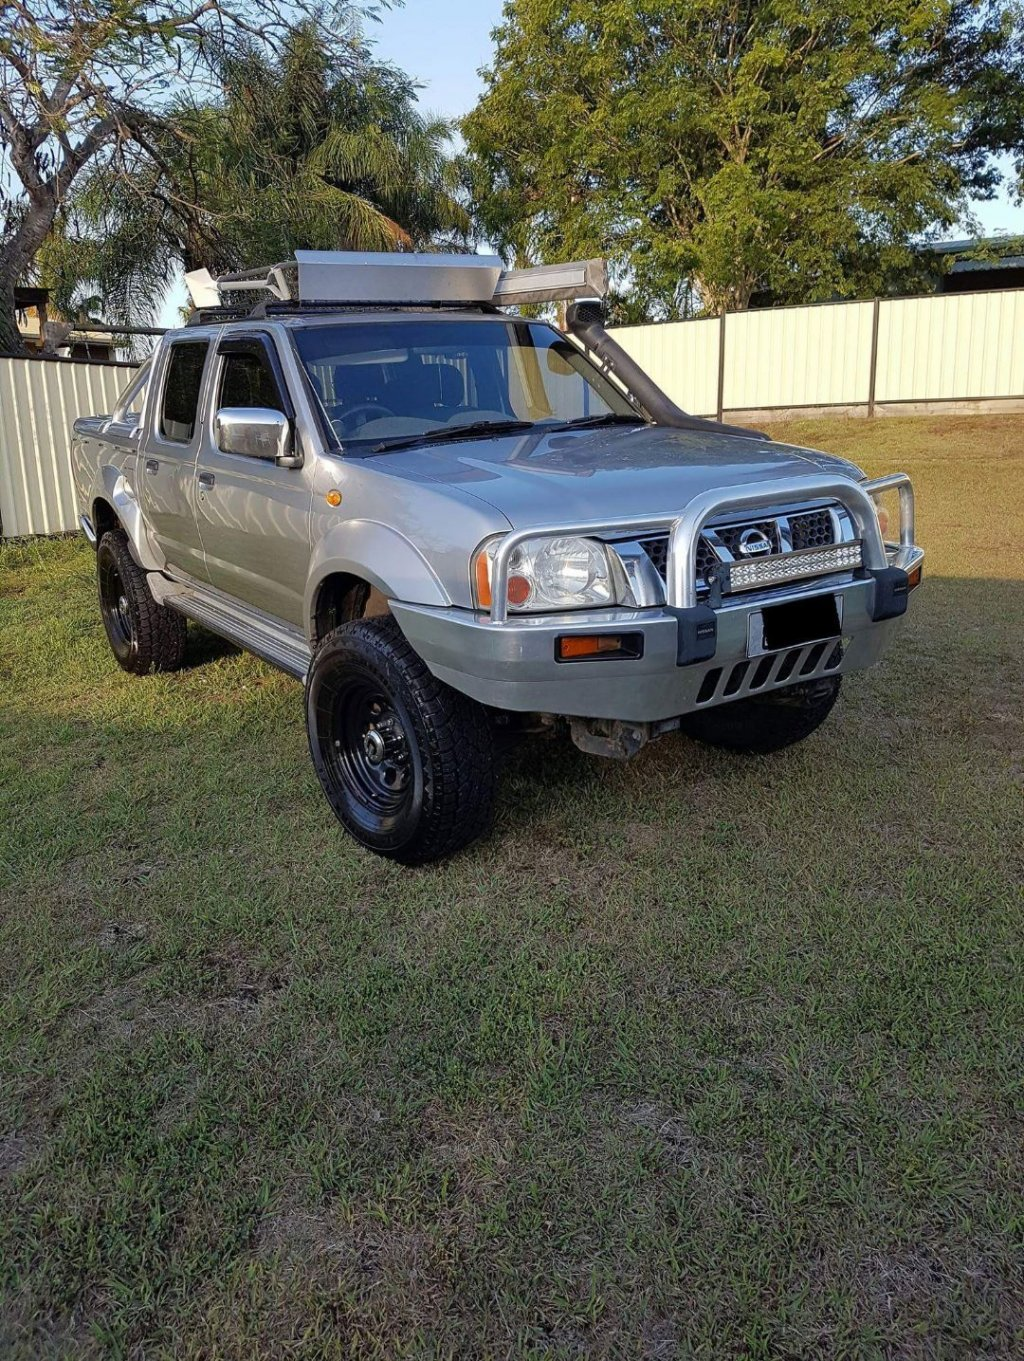 4x4 Off Road Cars for Sale on BoostCruising | It\'s FREE and it works!